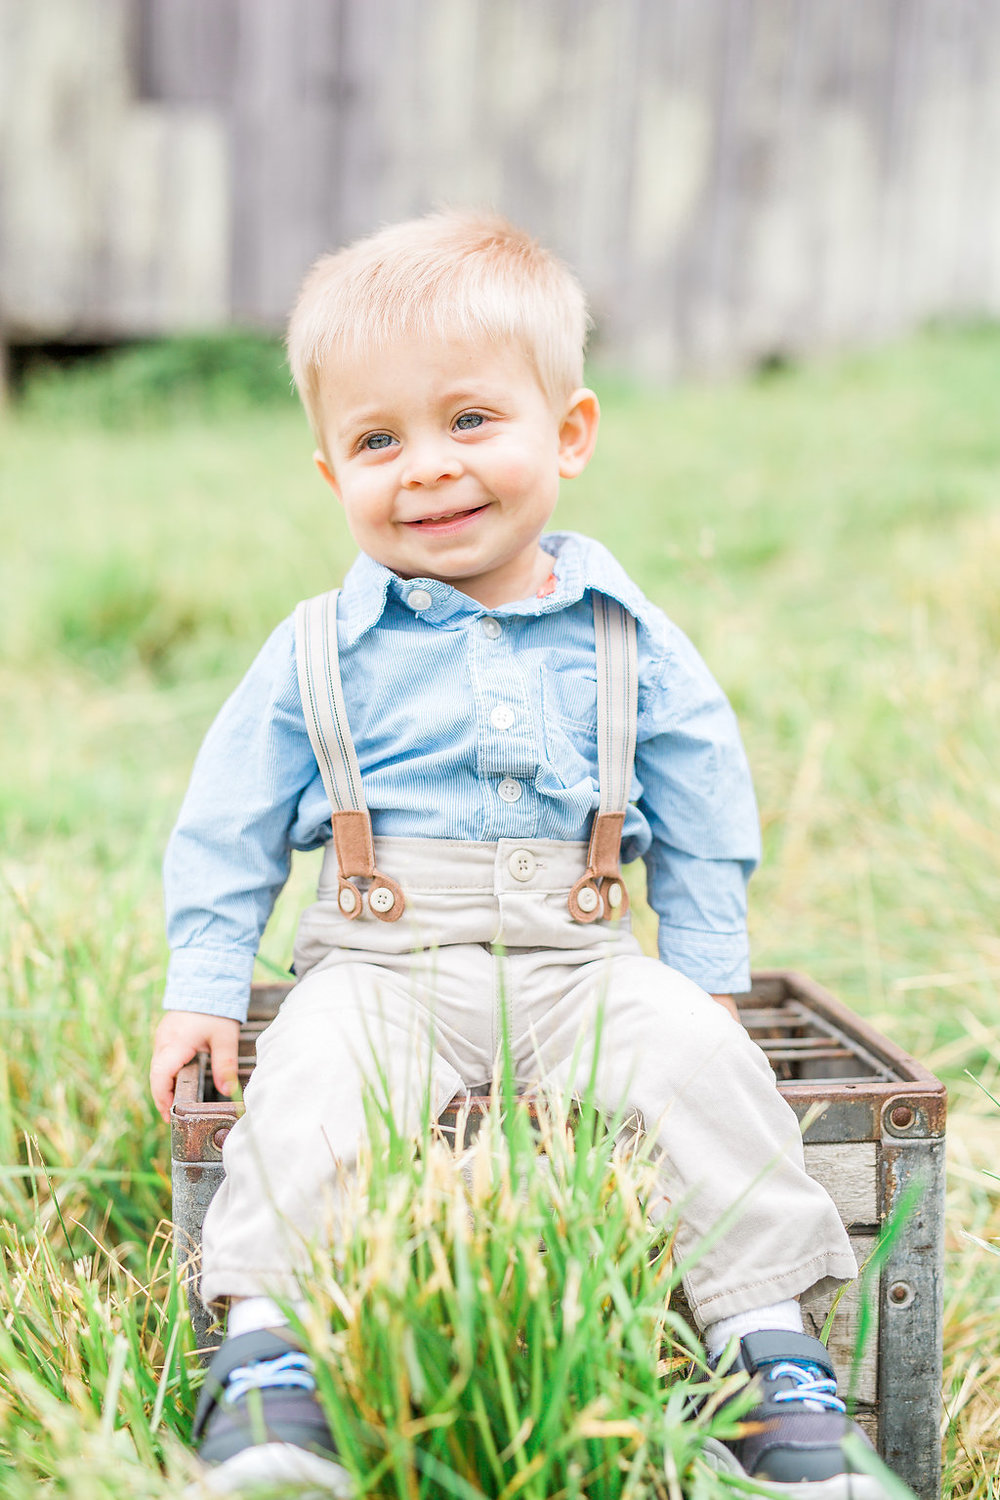 Family Photo Session | What to Wear for Family Pictures | Twin Photo Session | Family Photography | Mastin Labs | Lifestyle Photography | Twin Boys Photo Session | Adorable Baby Boy Sitting on Wood Crate